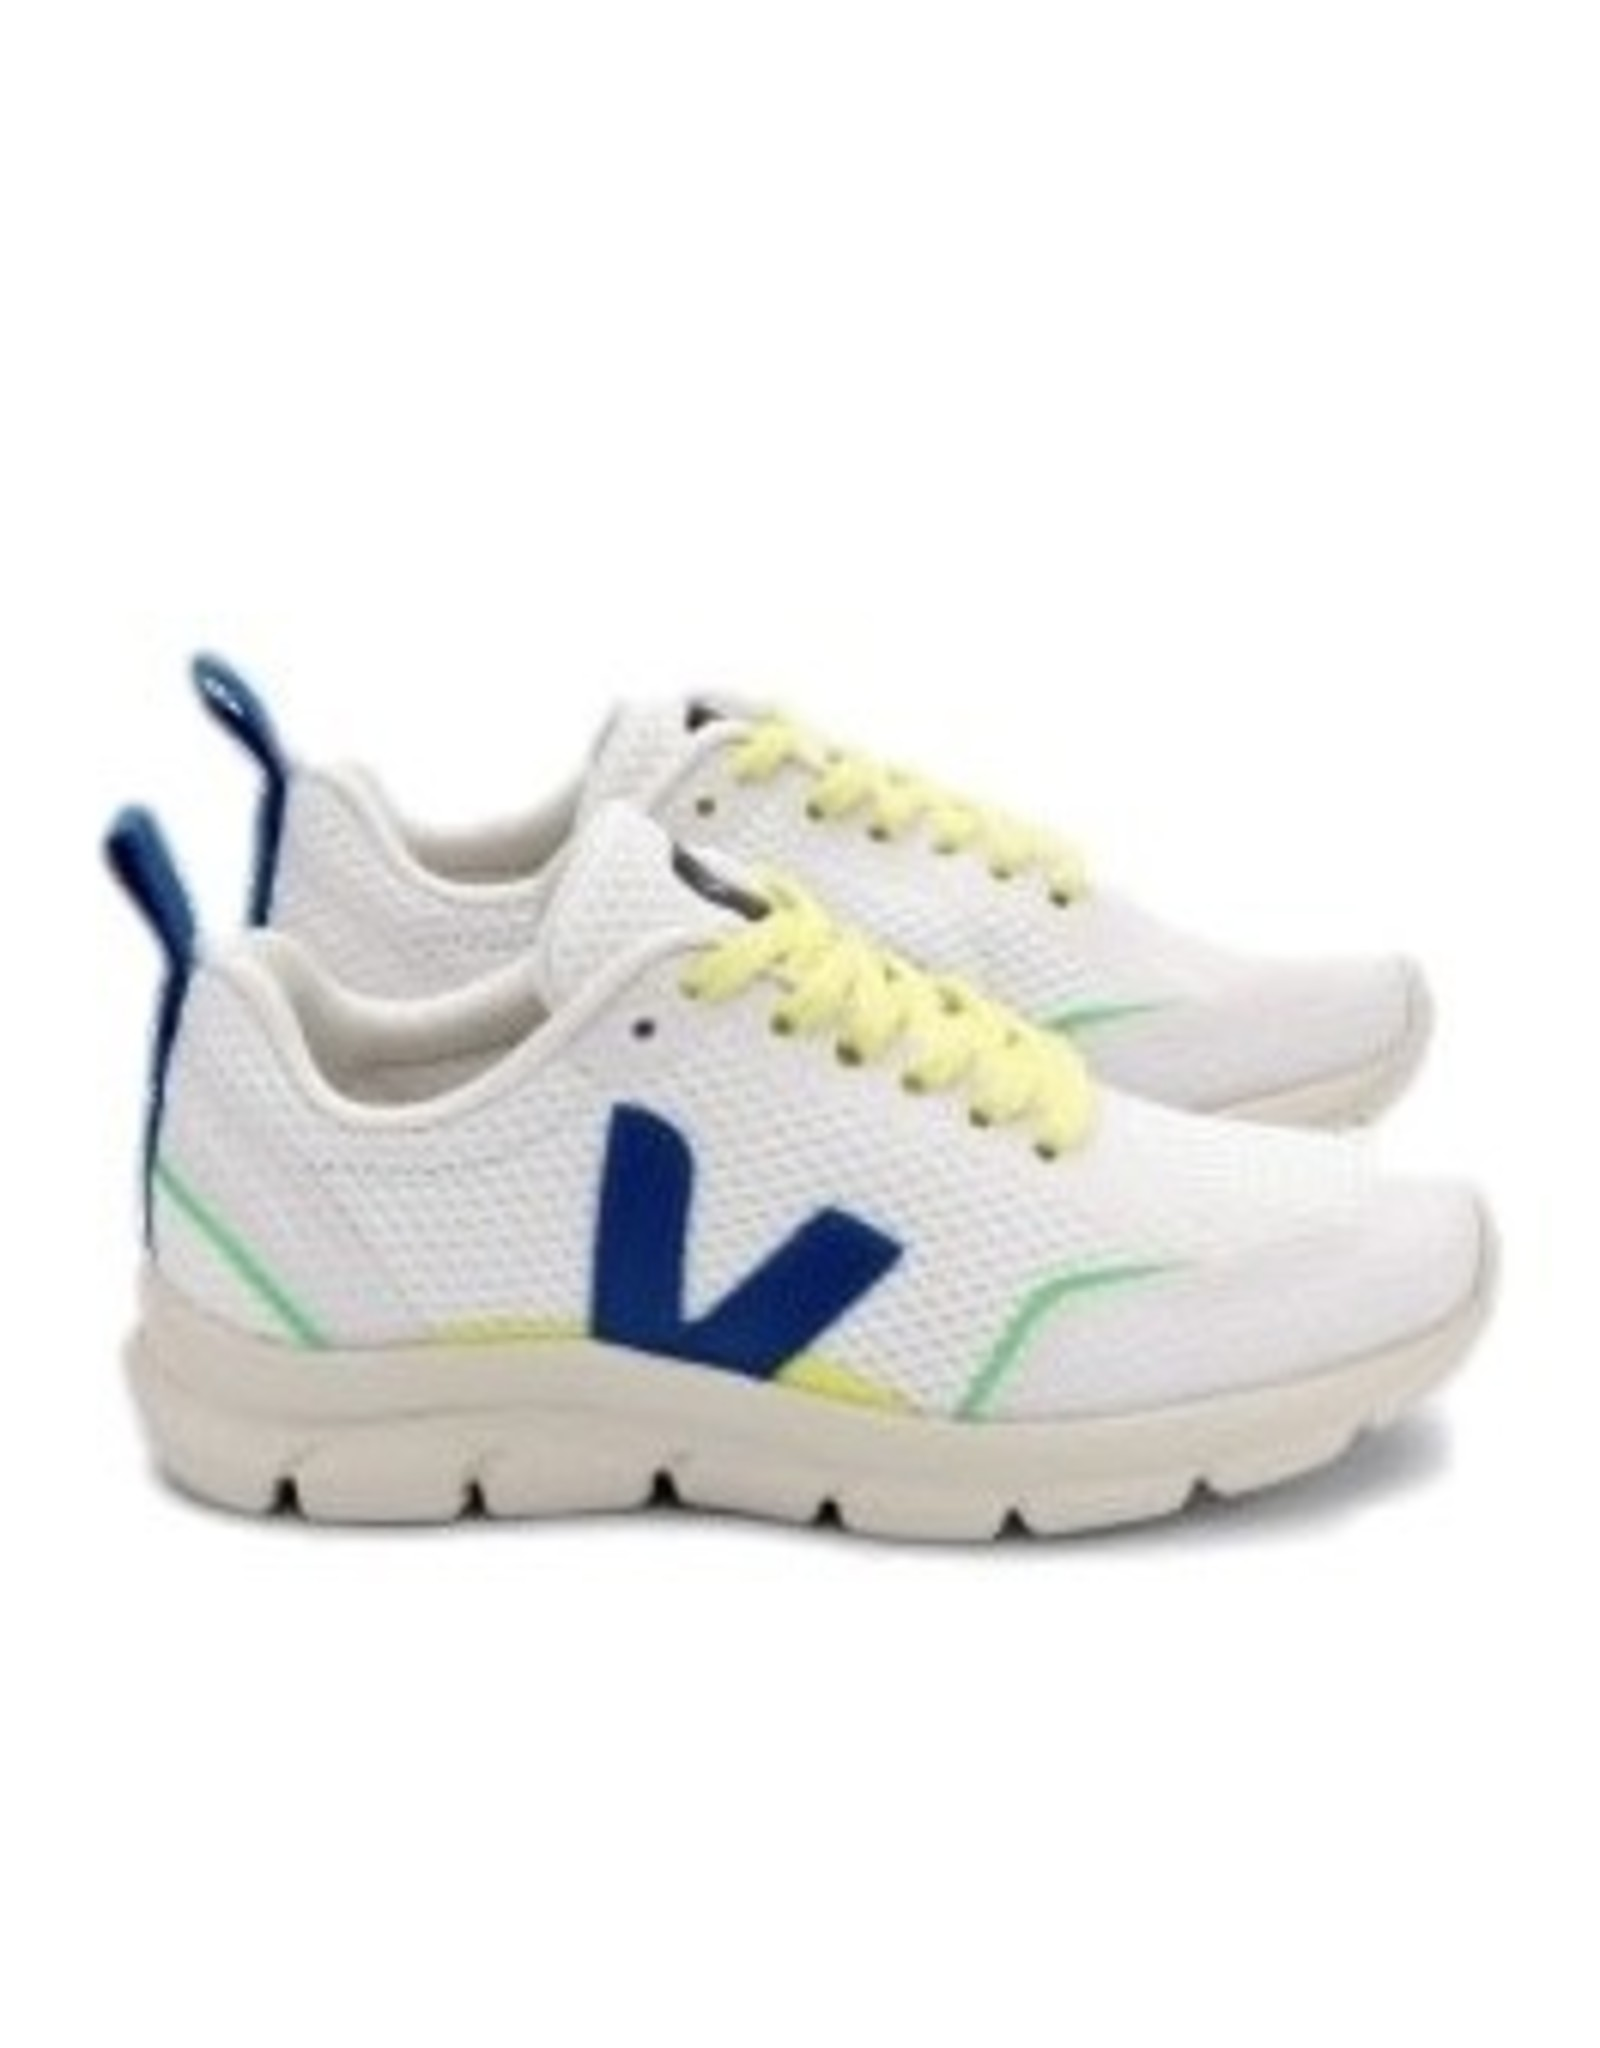 Veja Copy of canary lace turquoise